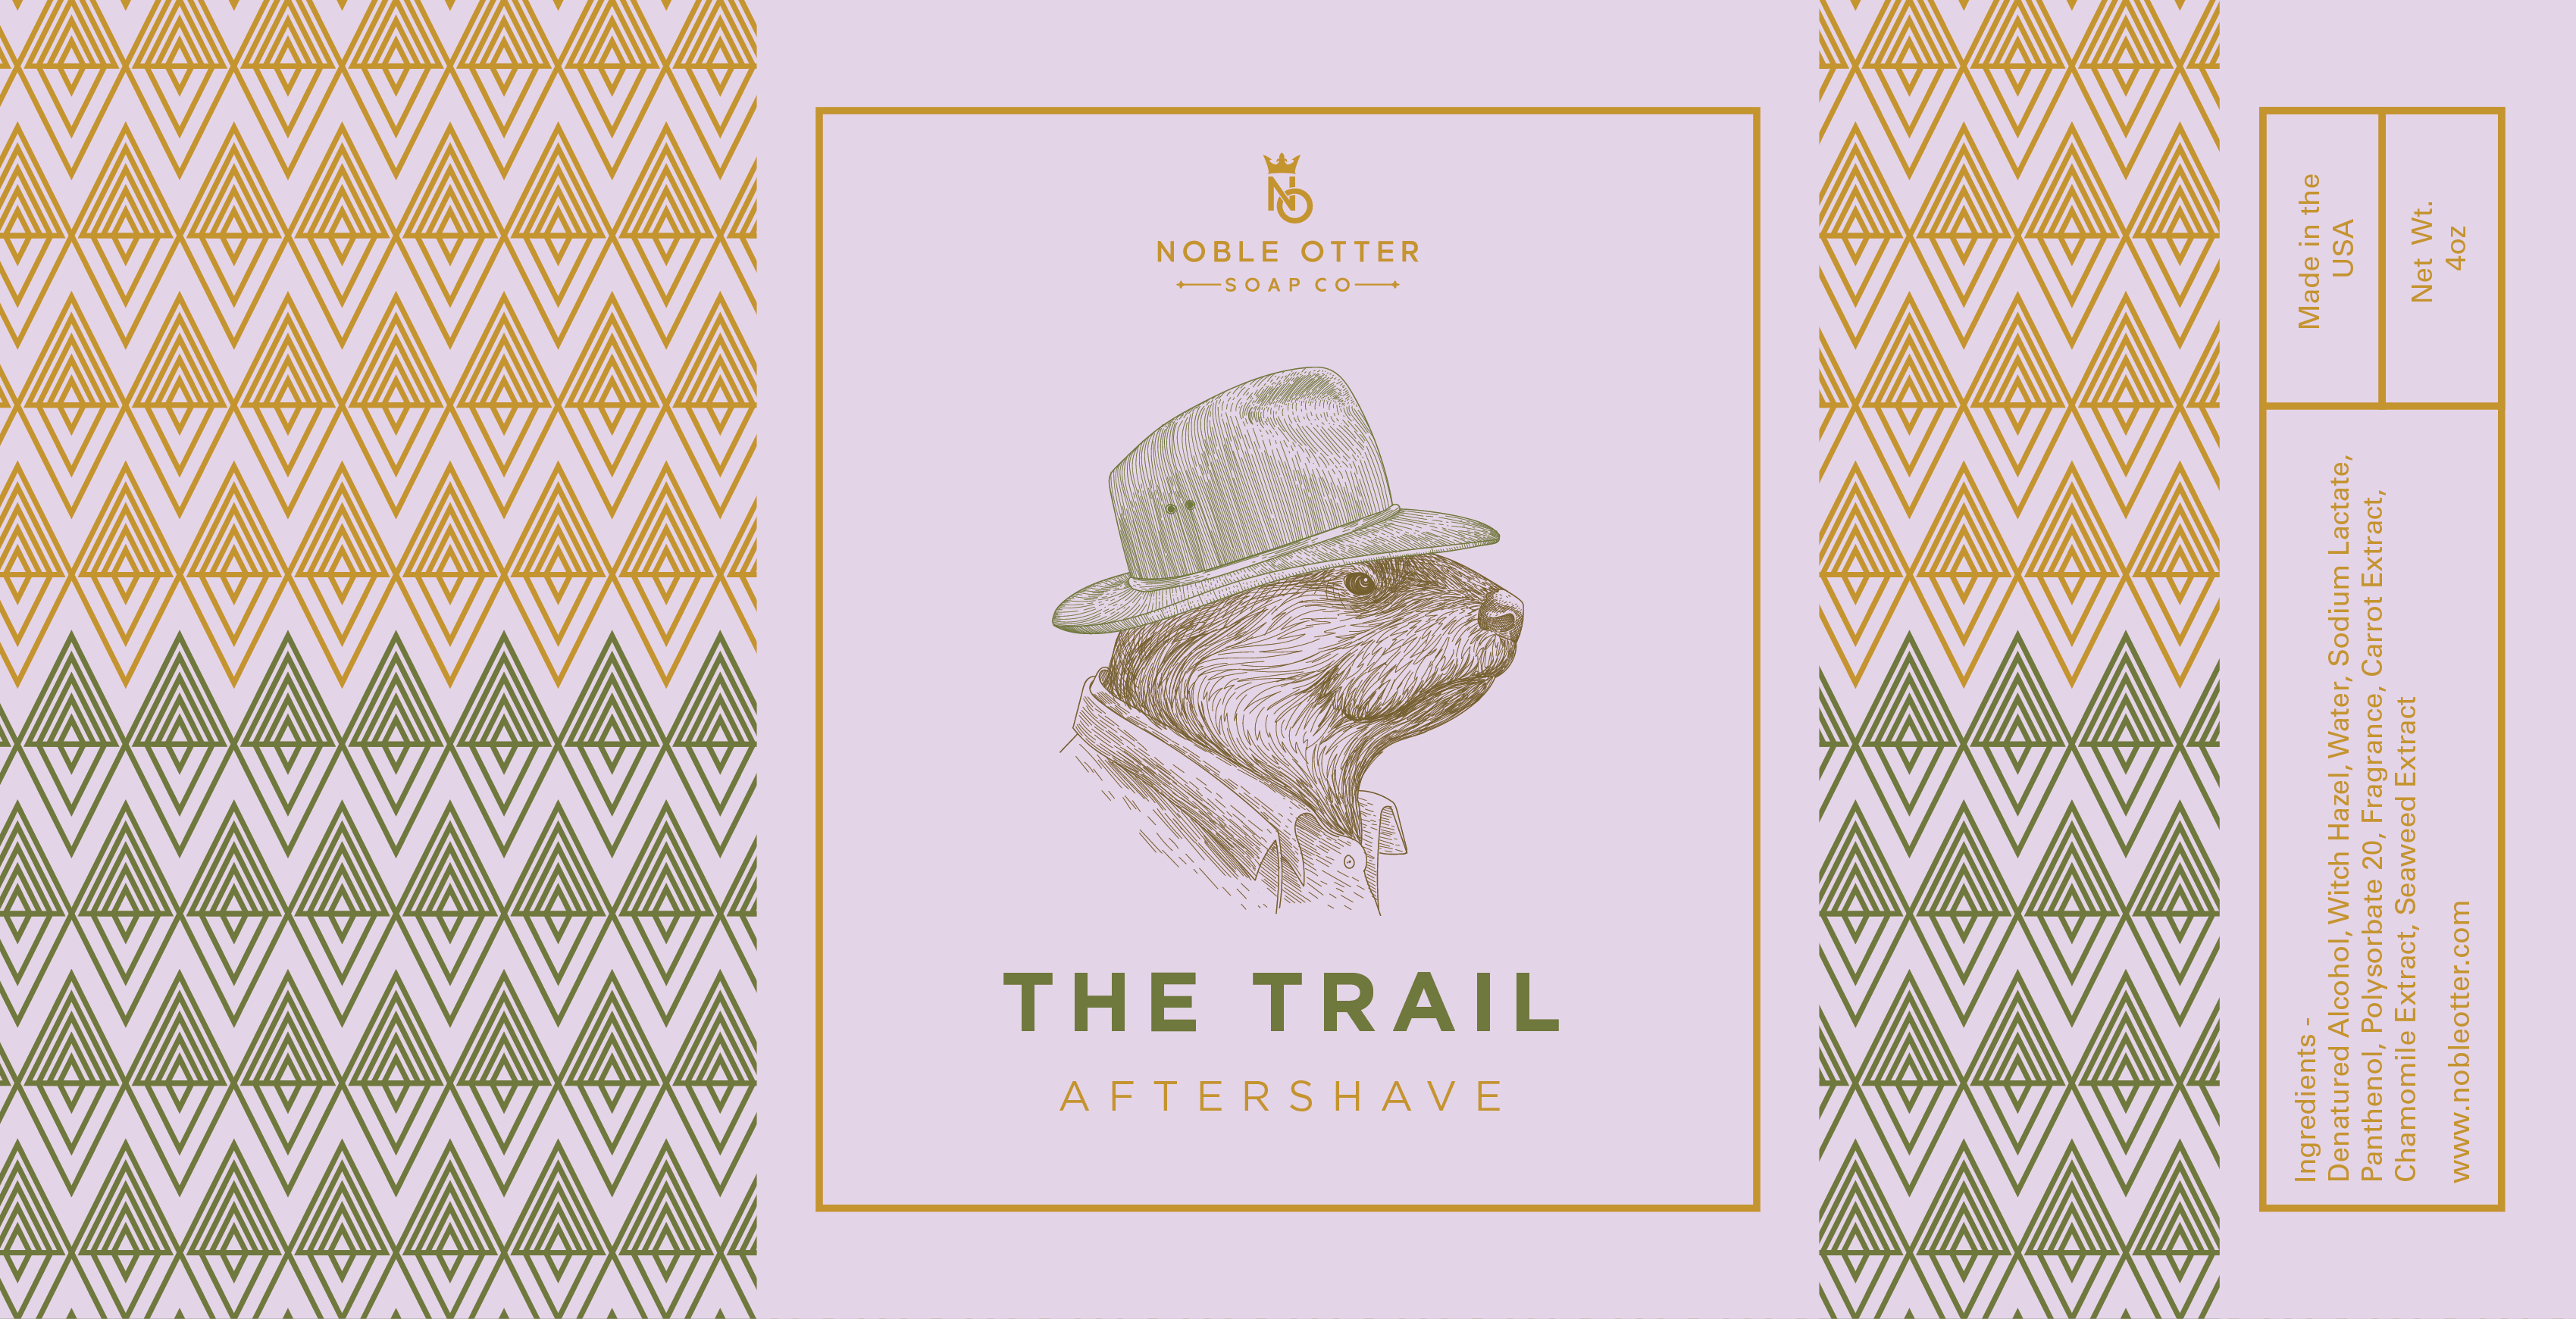 Noble Otter - The Trail - Aftershave image